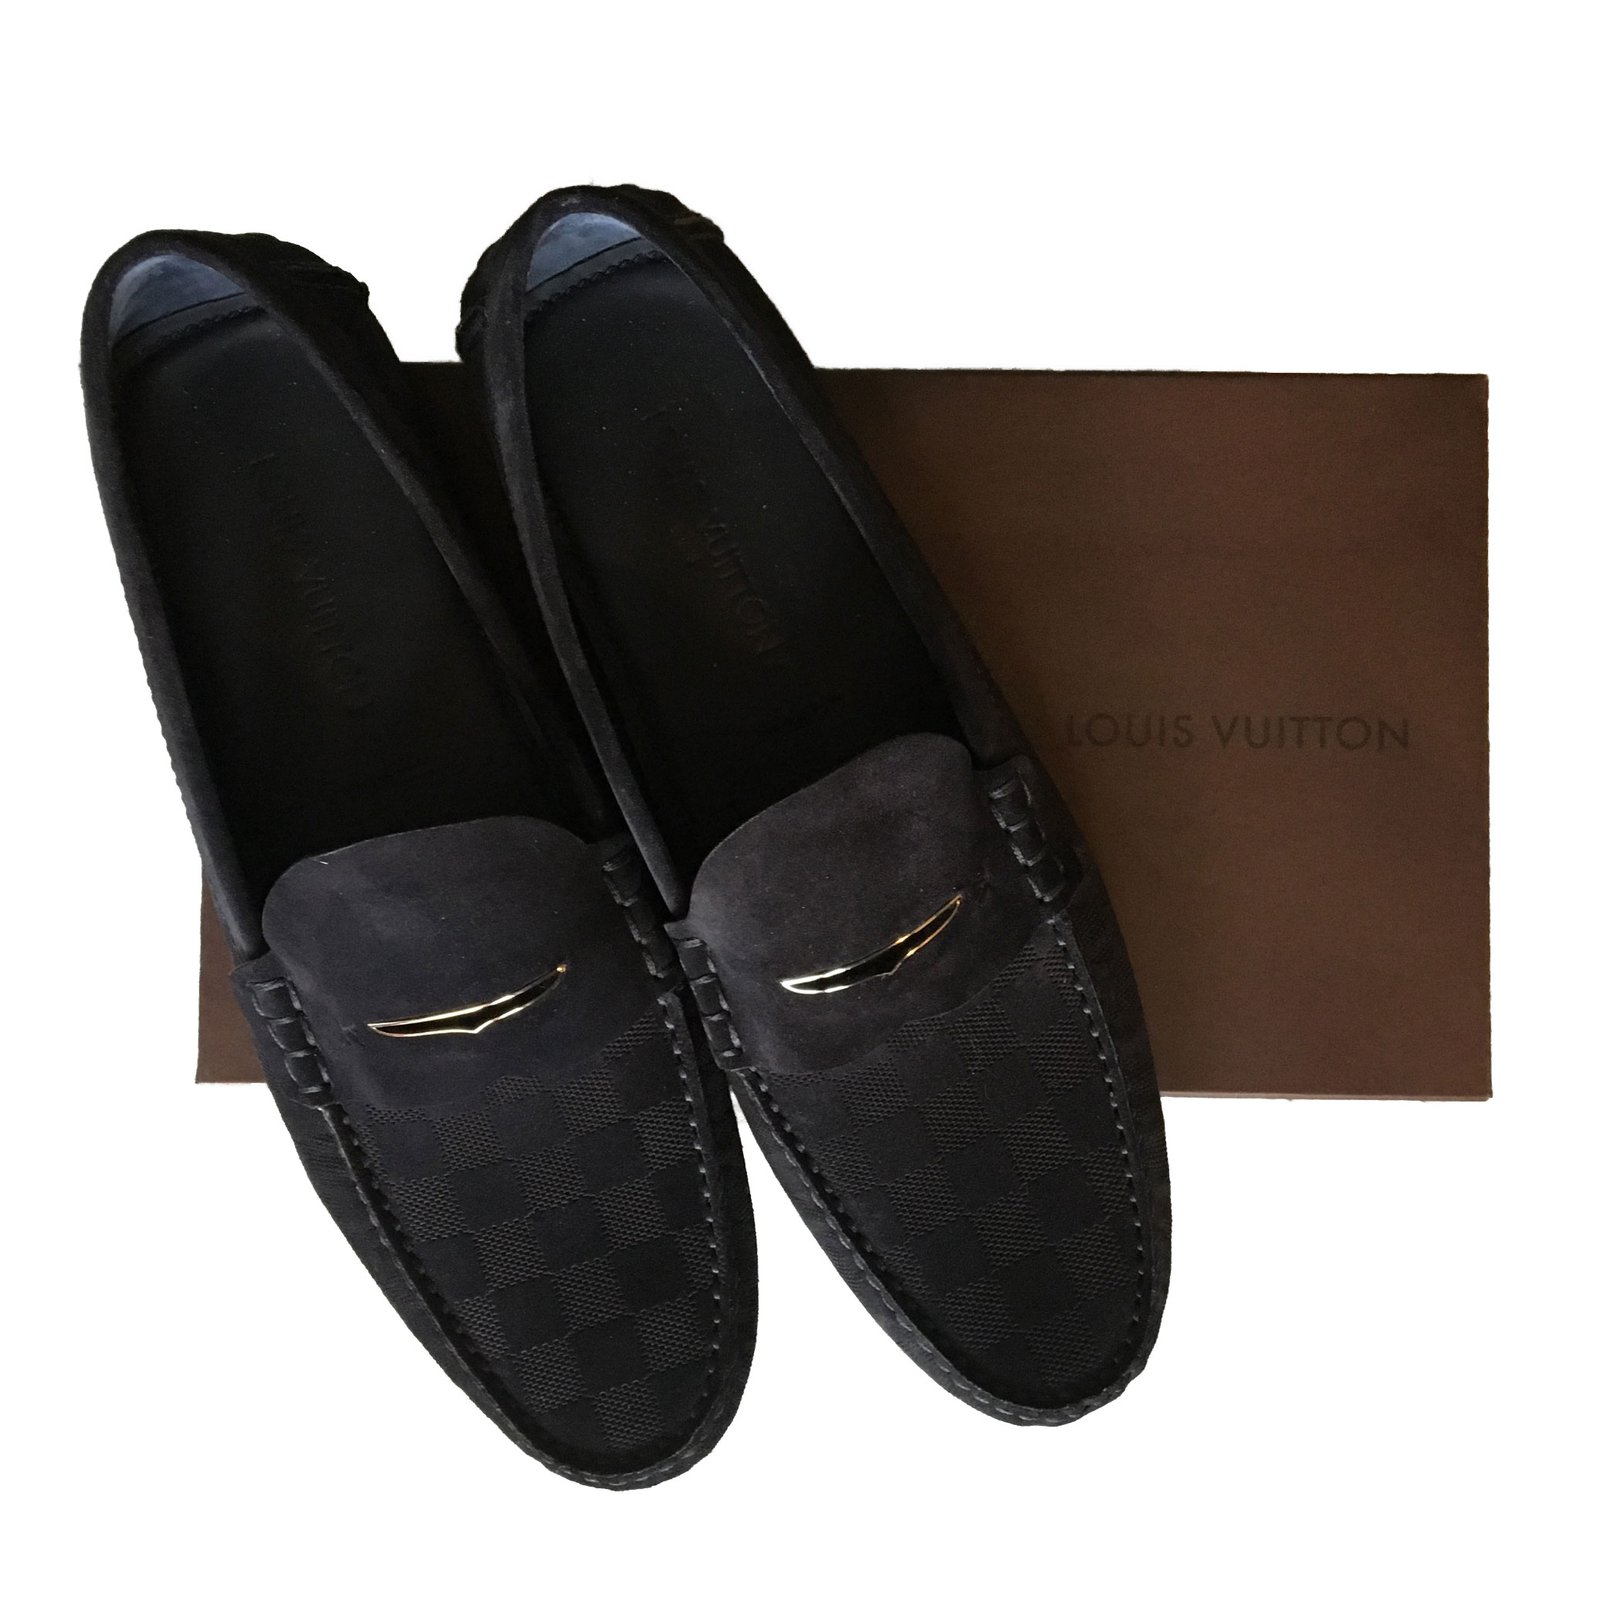 7a3a051f7a8 Louis Vuitton Loafers Slip ons Loafers Slip ons Other Navy blue ref.80593 -  Joli Closet